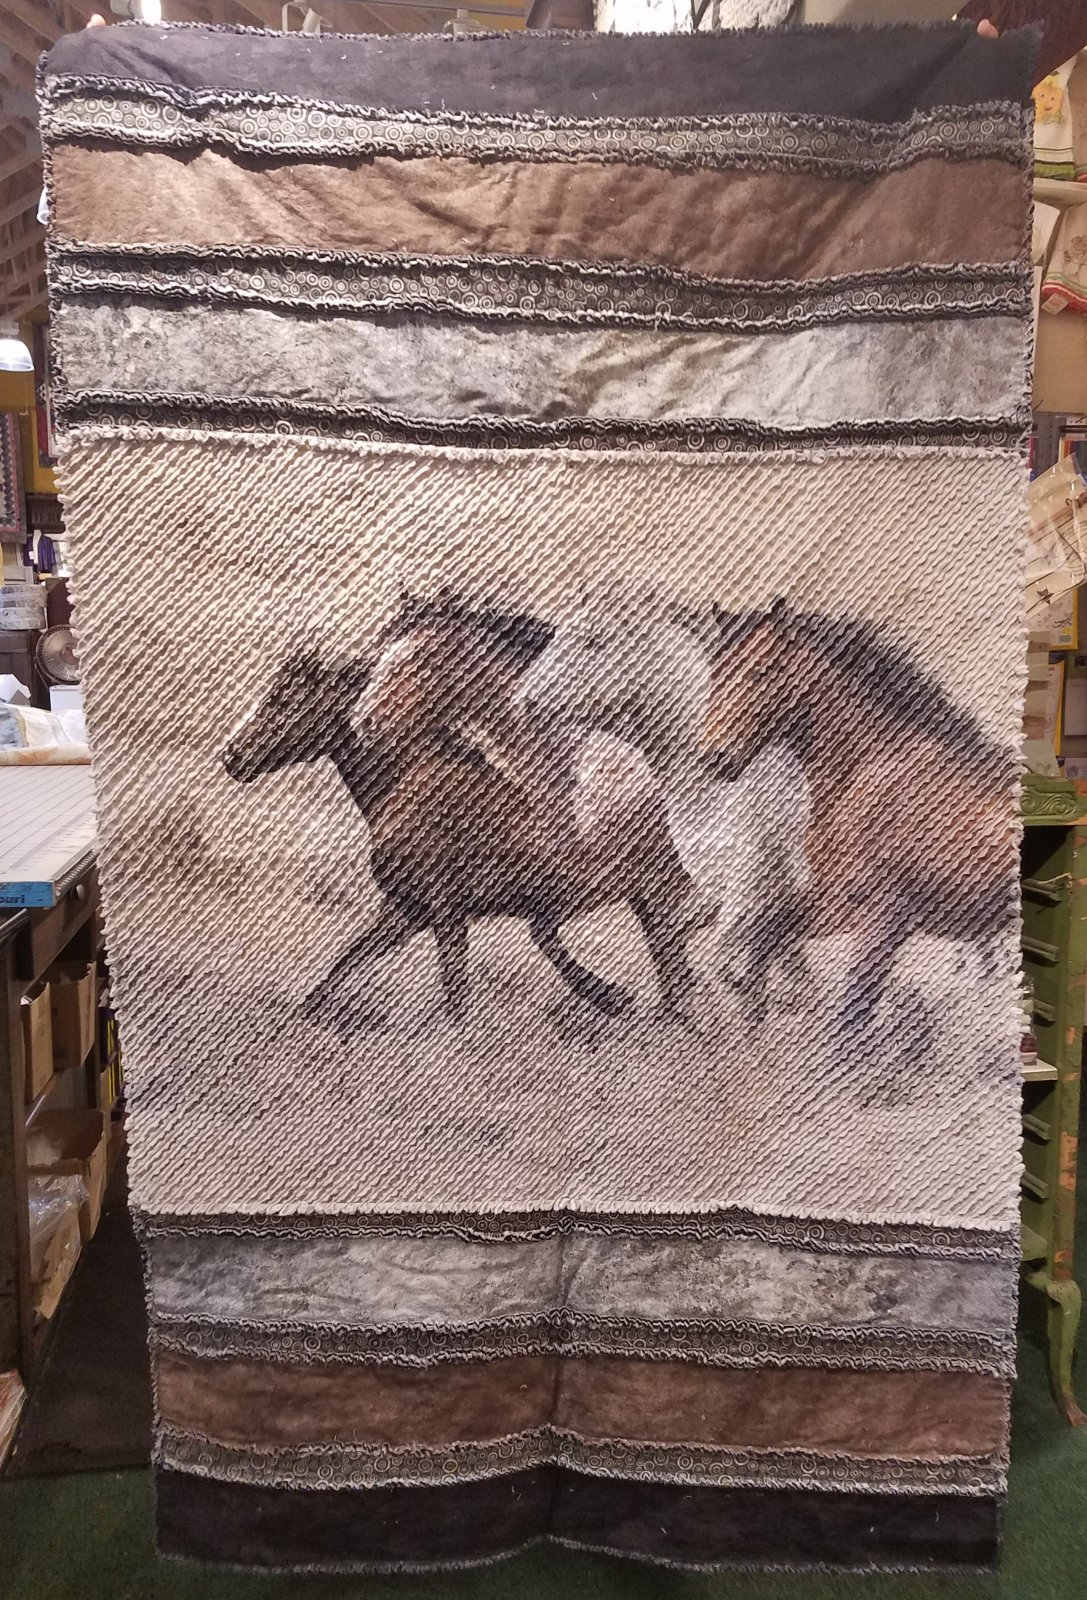 Just Seams Chenilled - Horses Throw Quilt Kit with Pattern